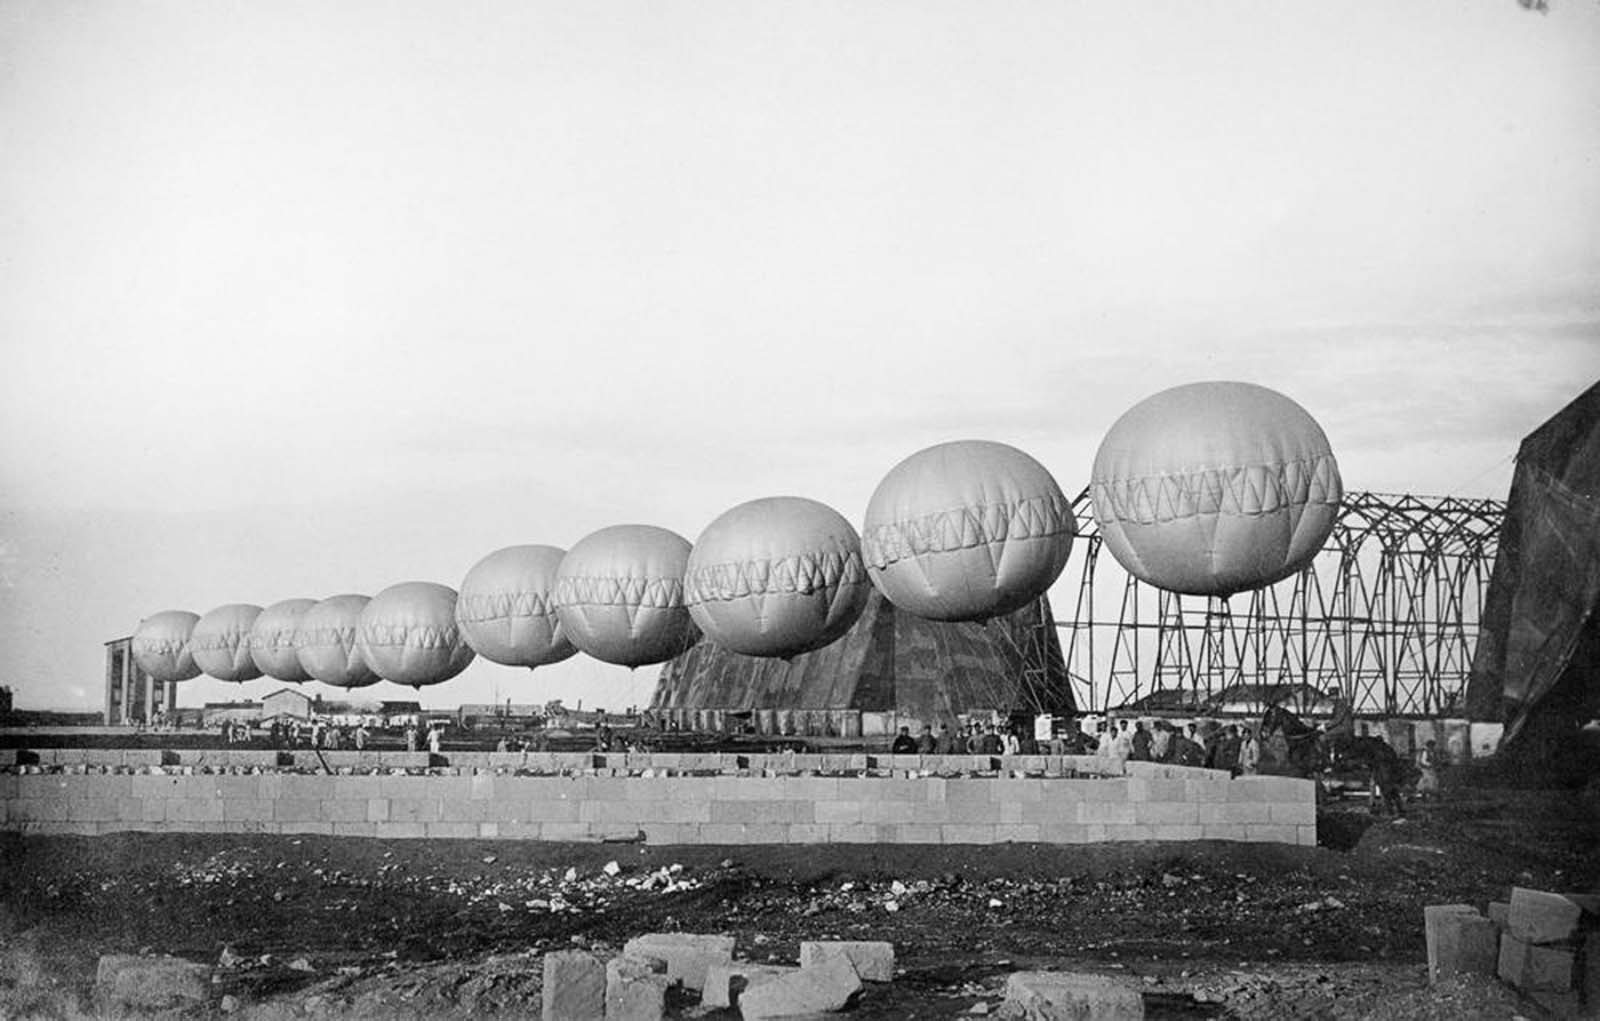 A row of barrage balloons used for suspending aerial nets in Brindisi, Italy. 1918.